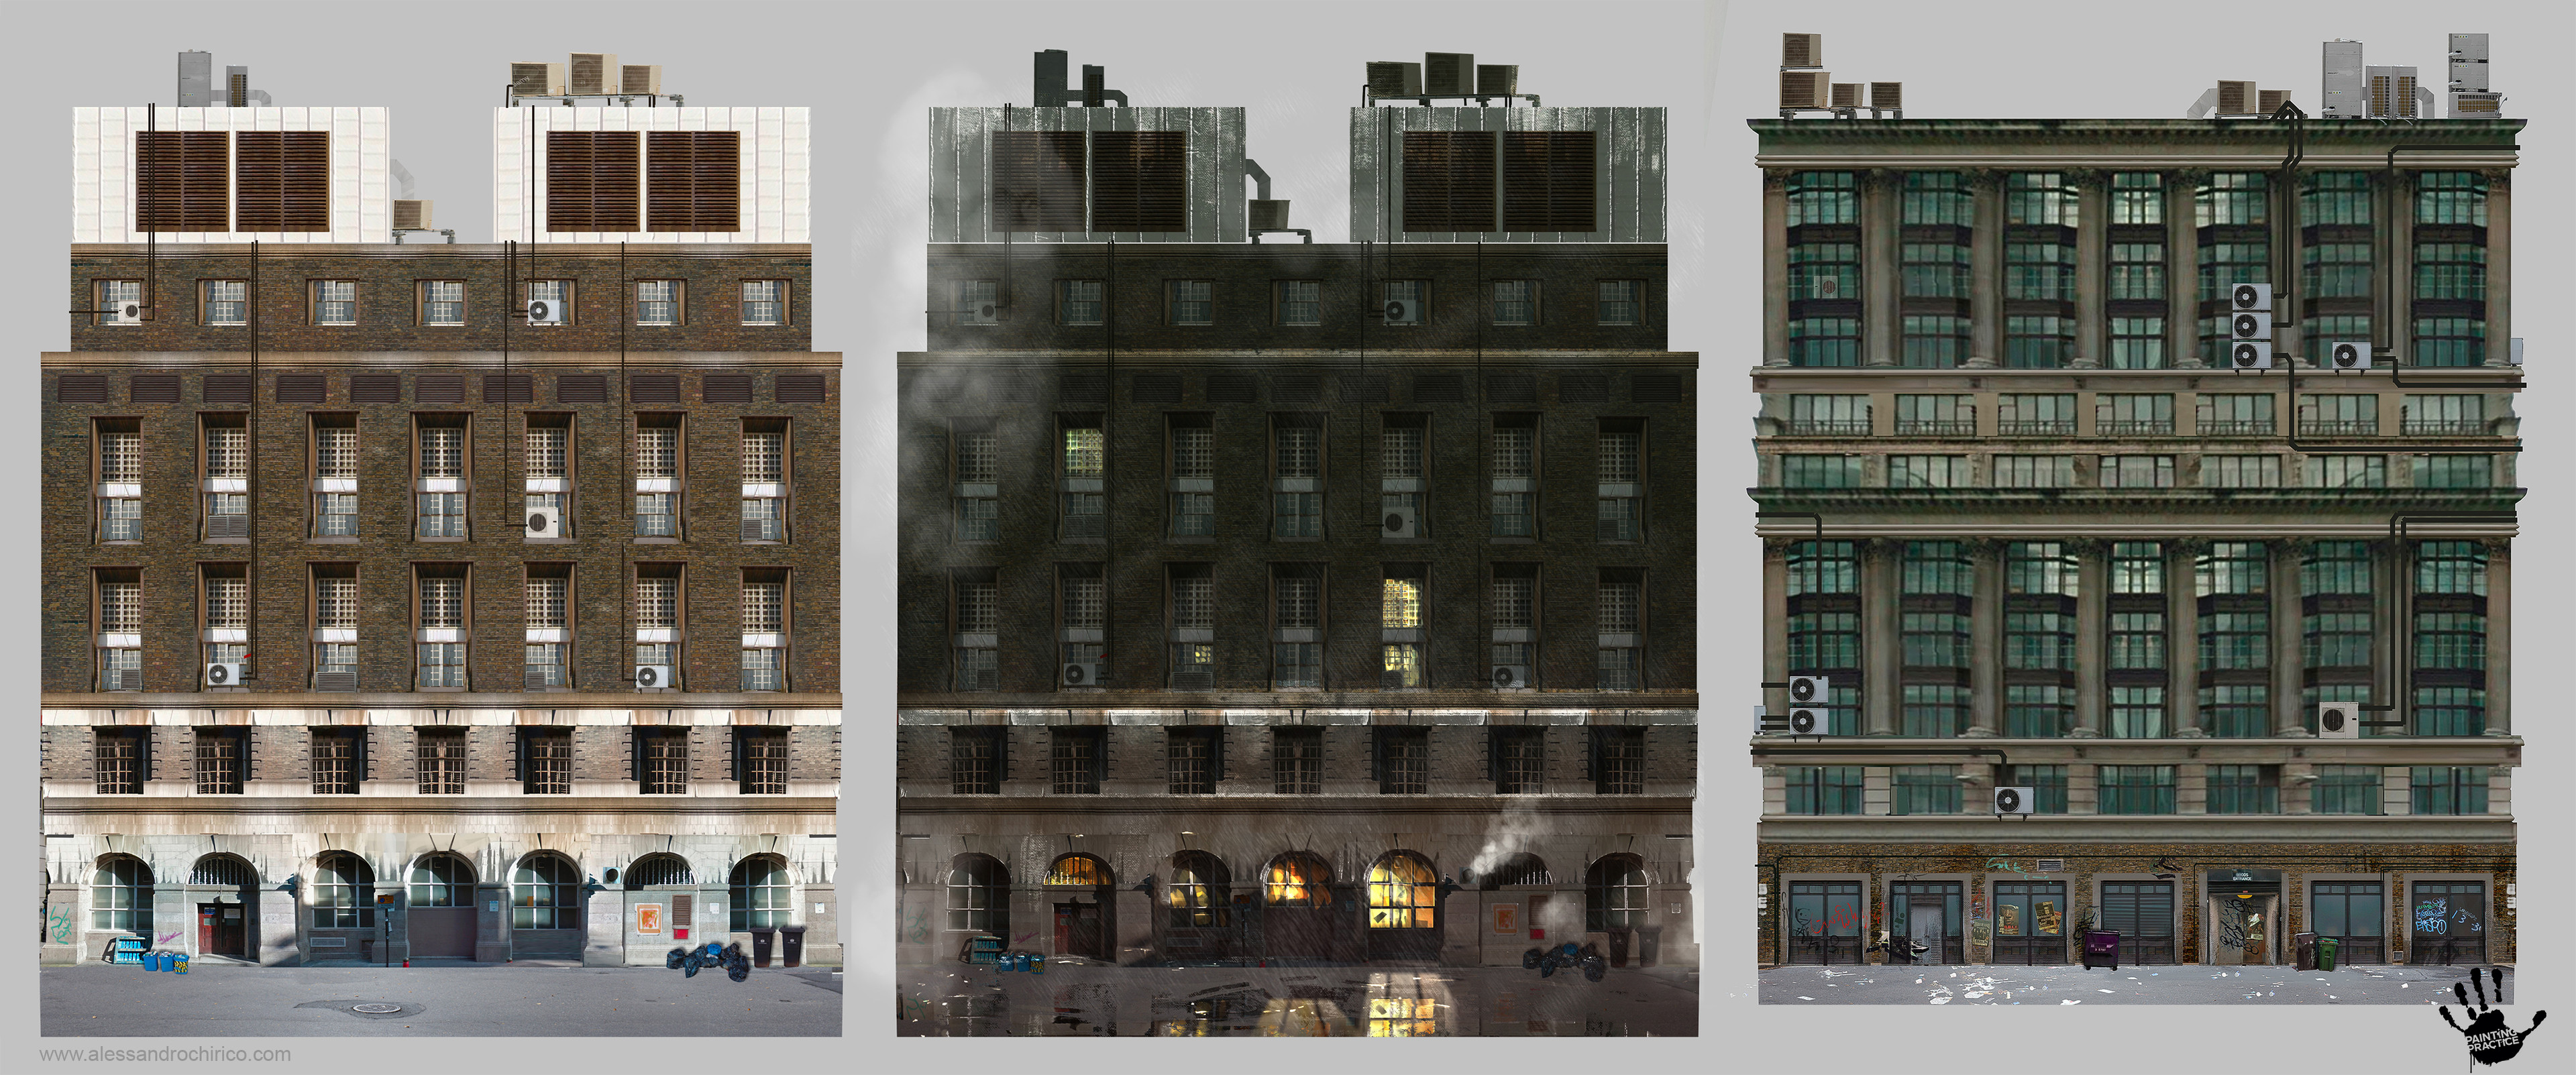 Exploration for some of the buildings of the city